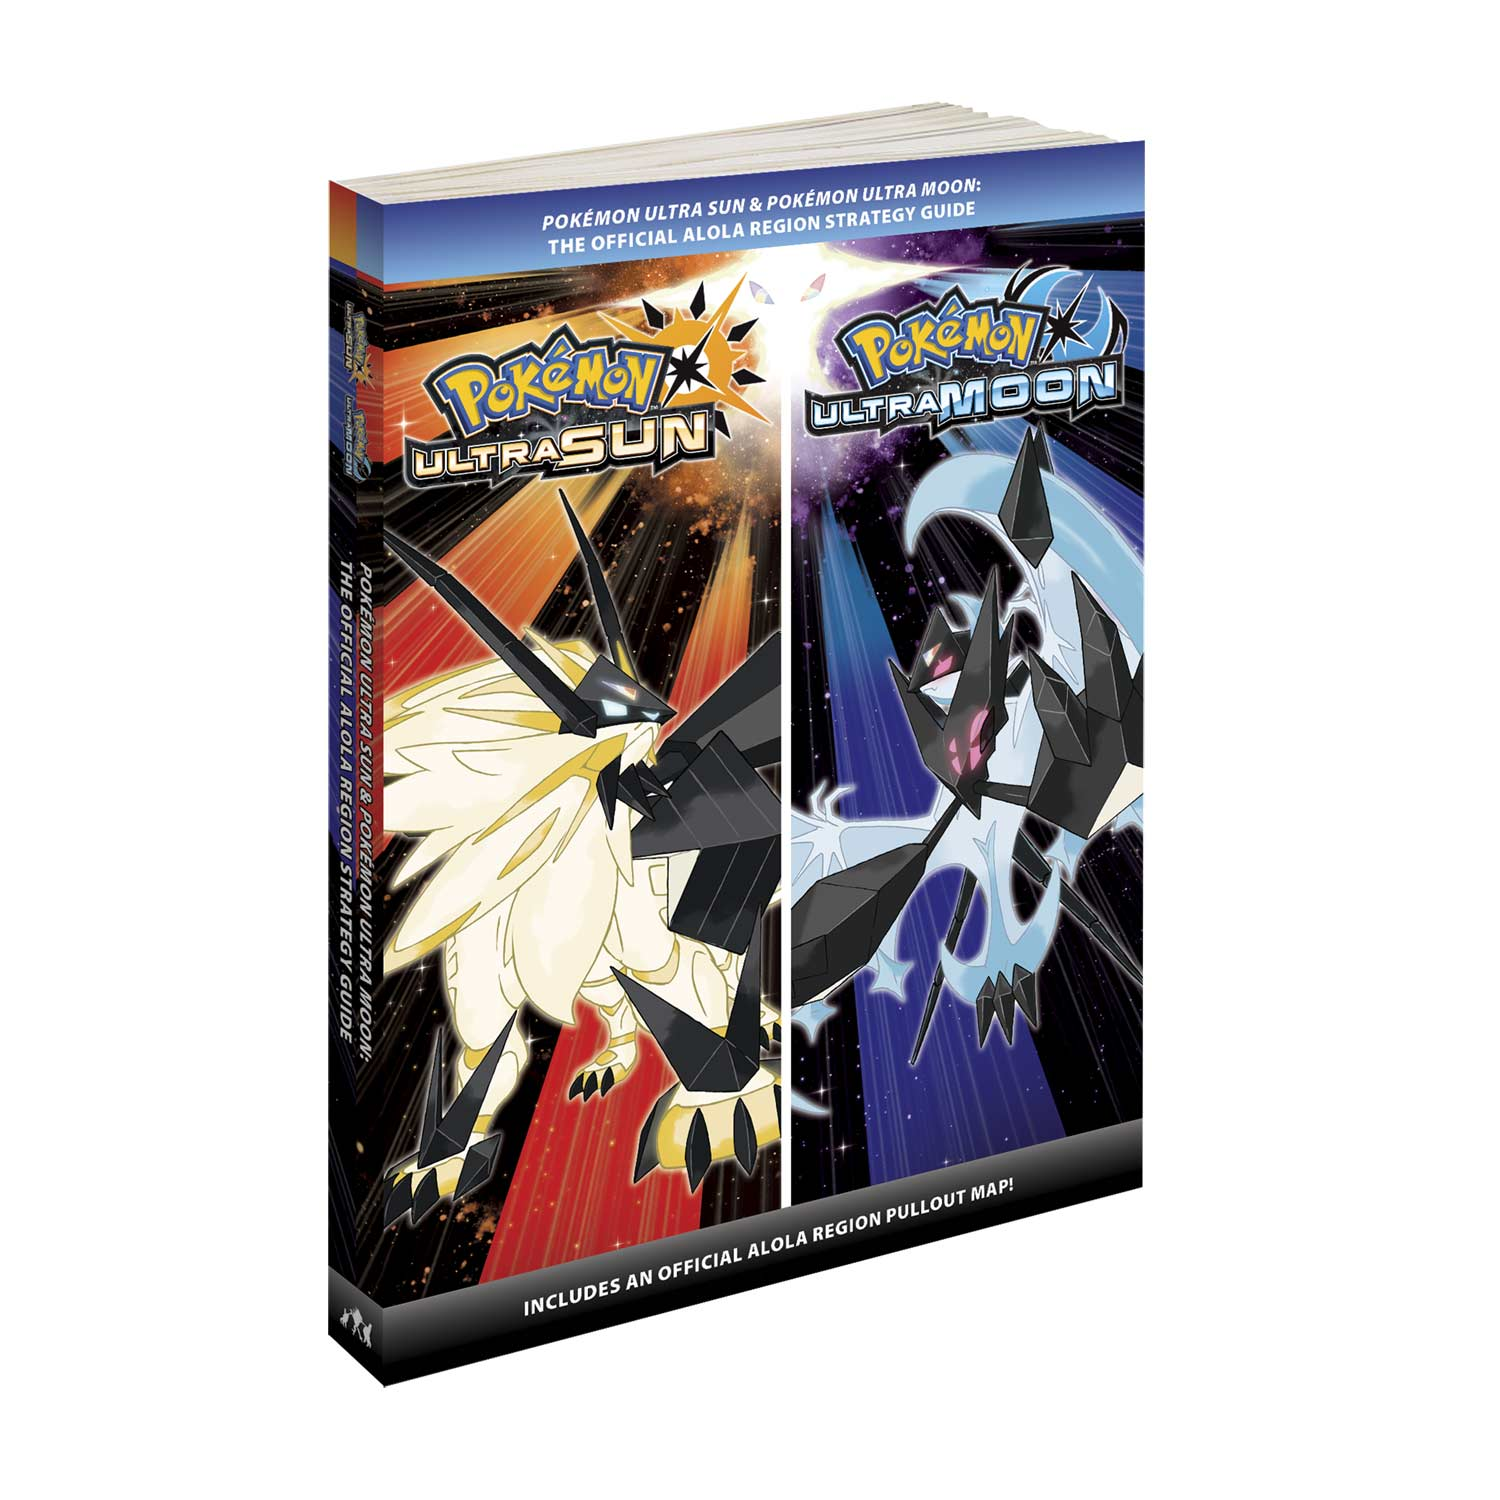 Image for Pokémon Ultra Sun   Pokémon Ultra Moon  The Official Alola Region  Strategy Guide 66a19204e2